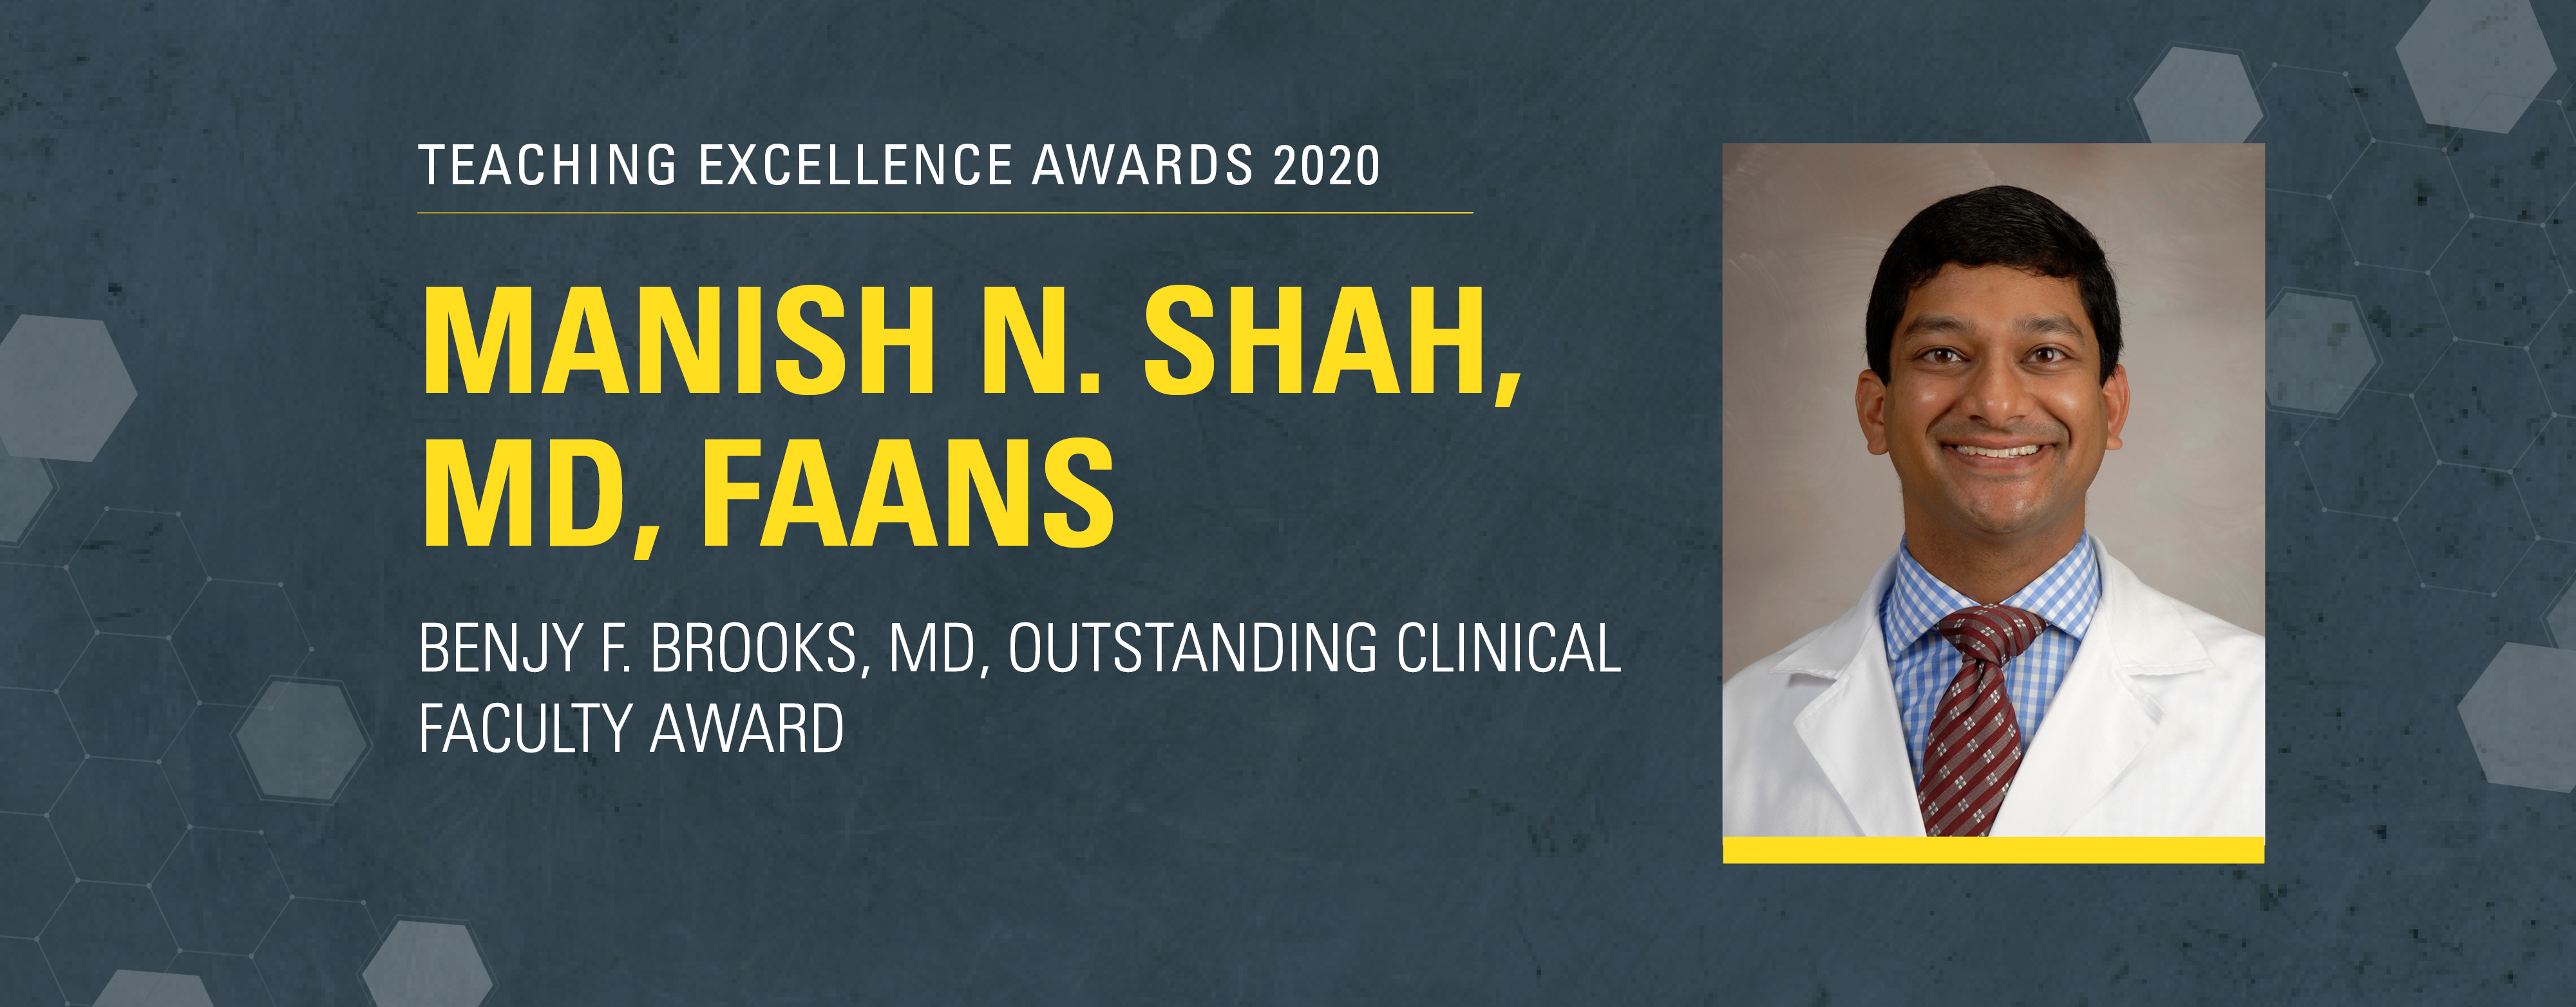 Manish Shah Teaching Excellence Award